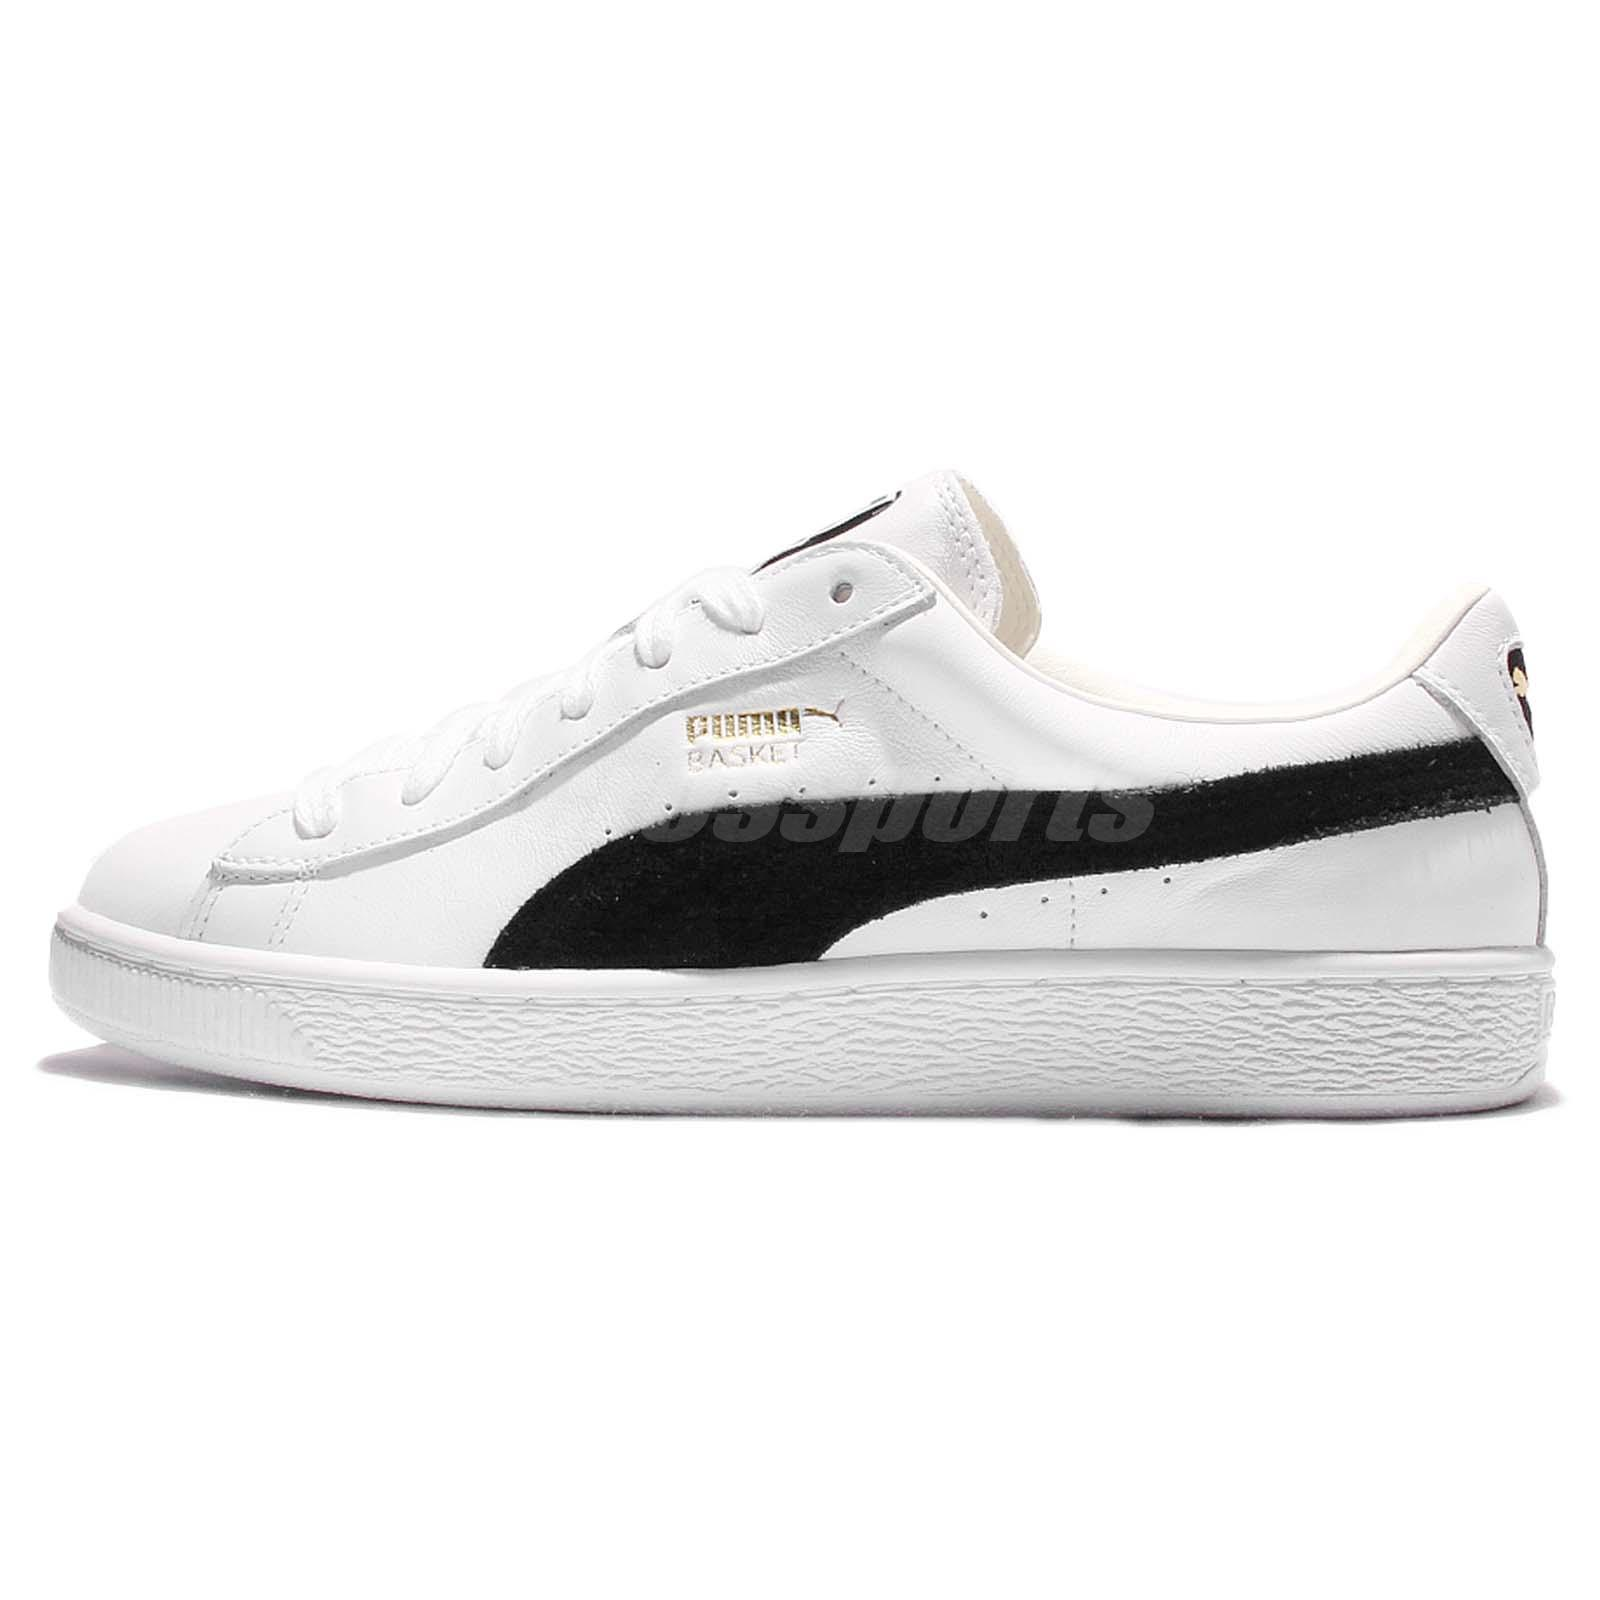 29f3e28dc08 Puma Basket Classic White Black Mens Casual Shoes Sneakers Trainers 351912 -03